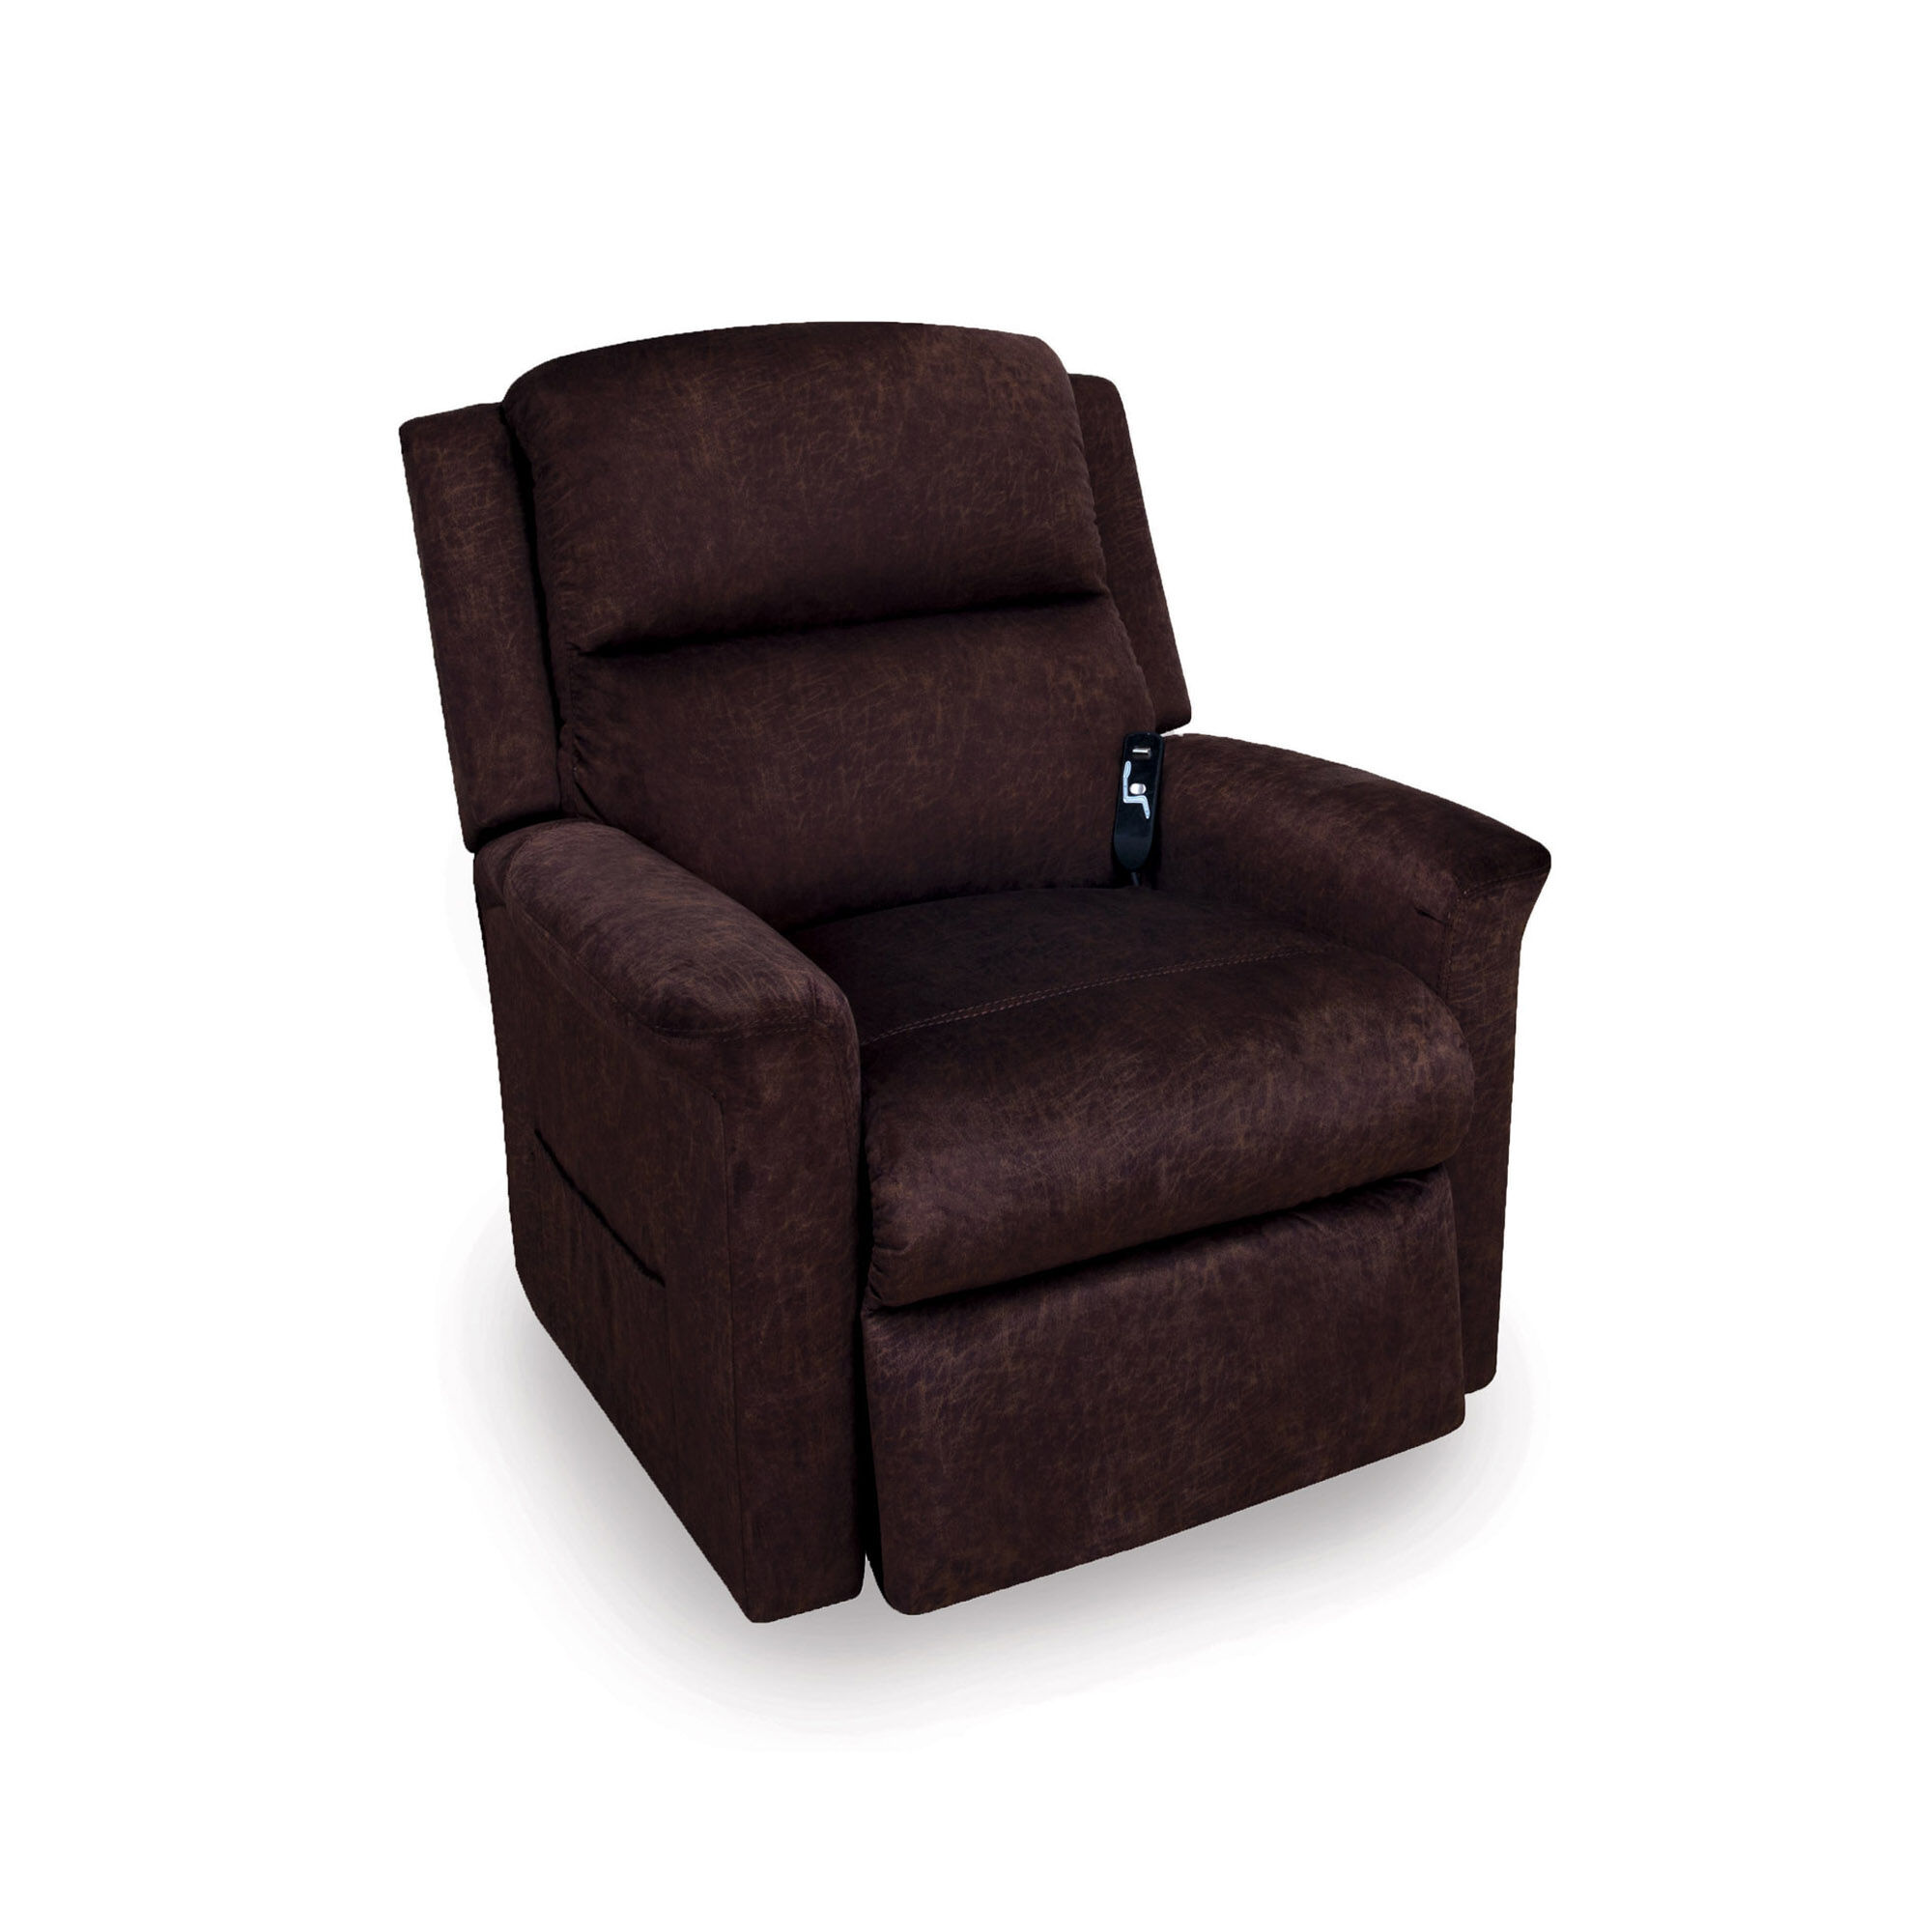 Ashley Furniture Reviews Power Lift Recliner